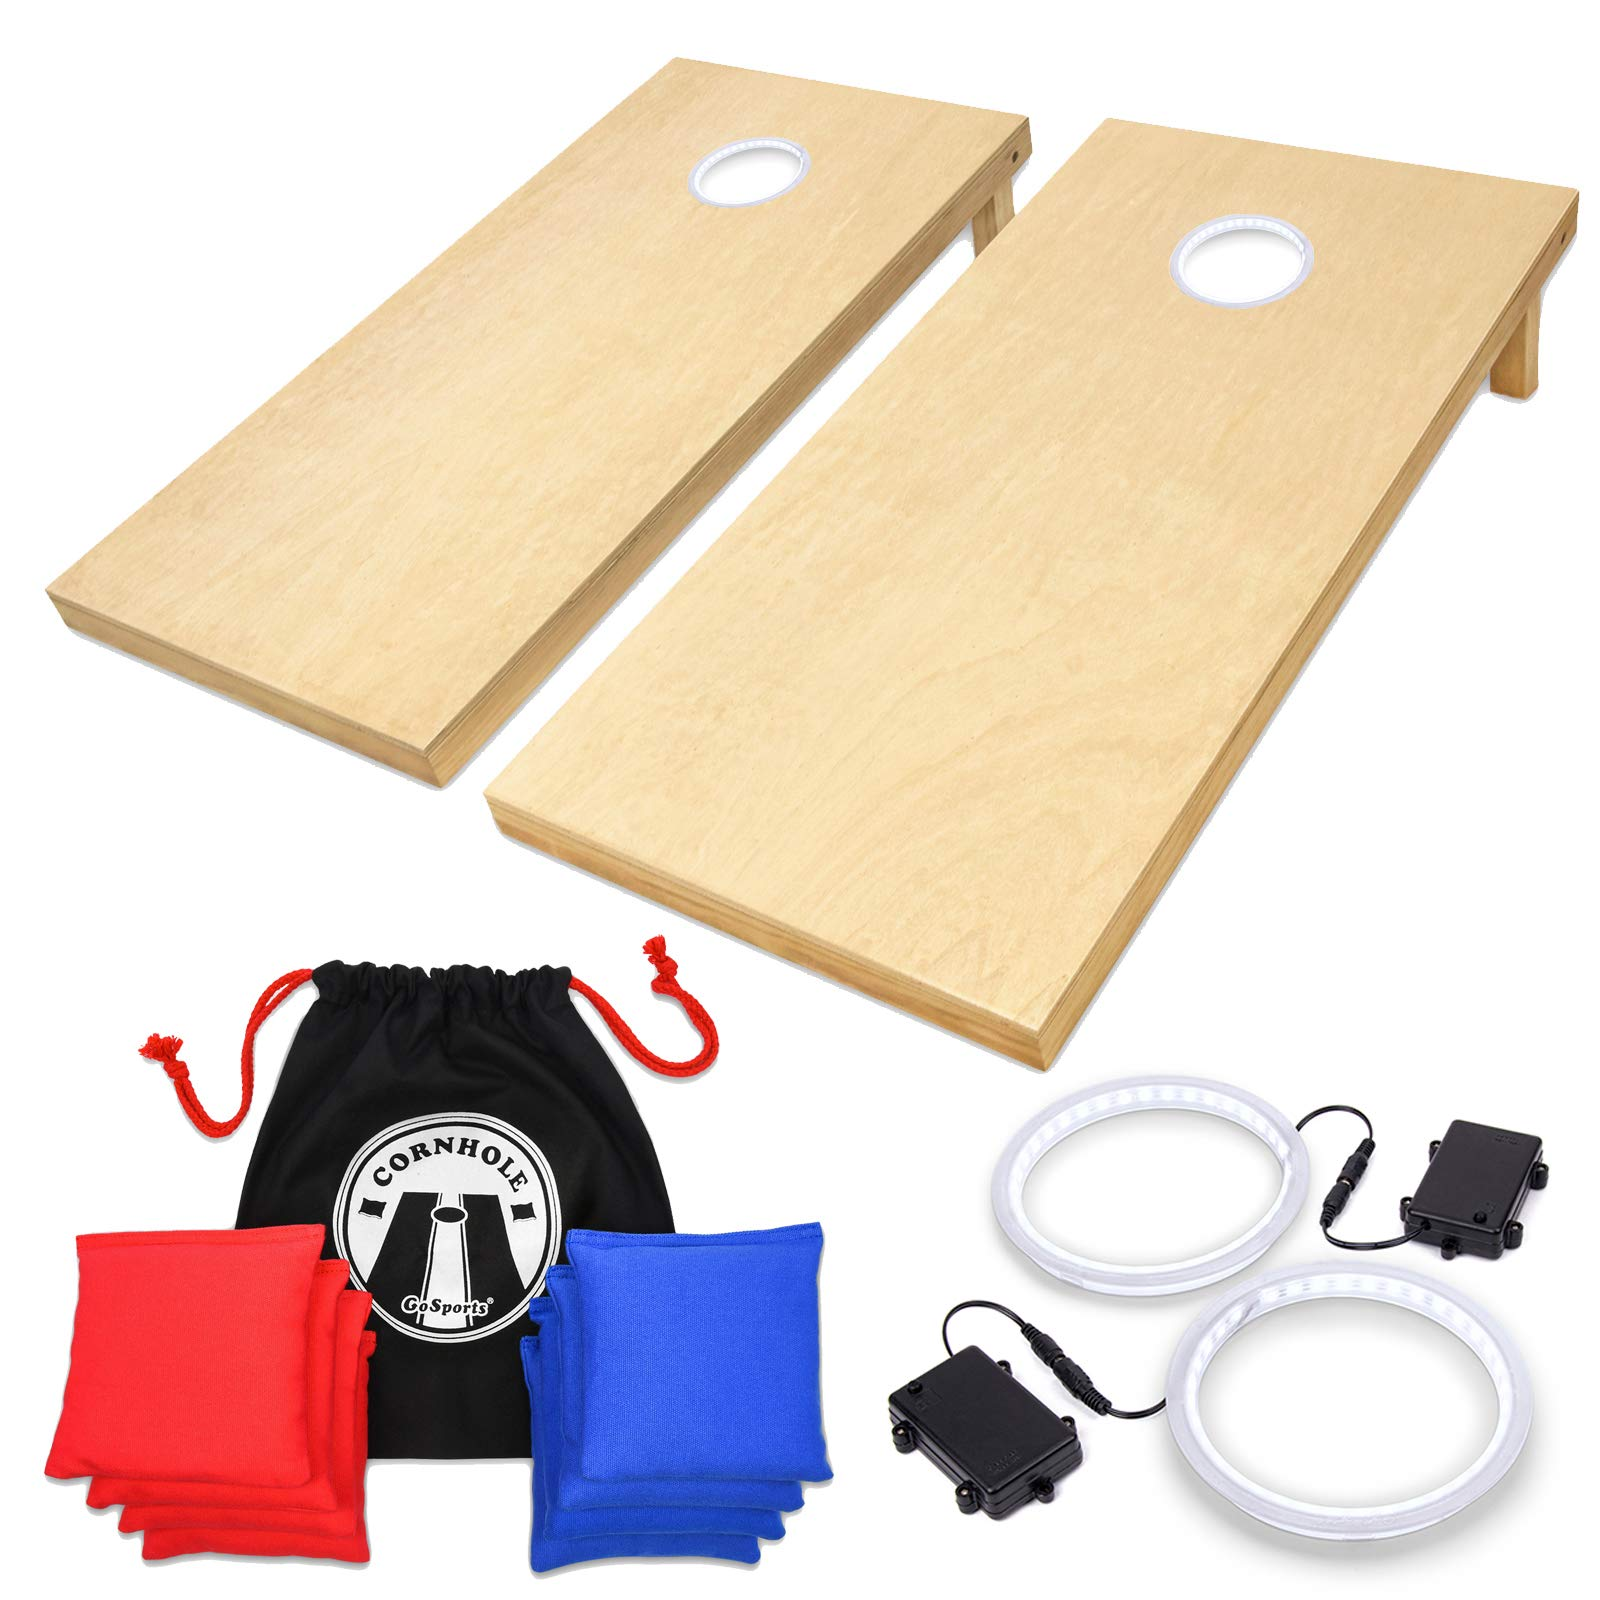 GoSports 4' x 2' Wooden Cornhole Set with White LED Rings